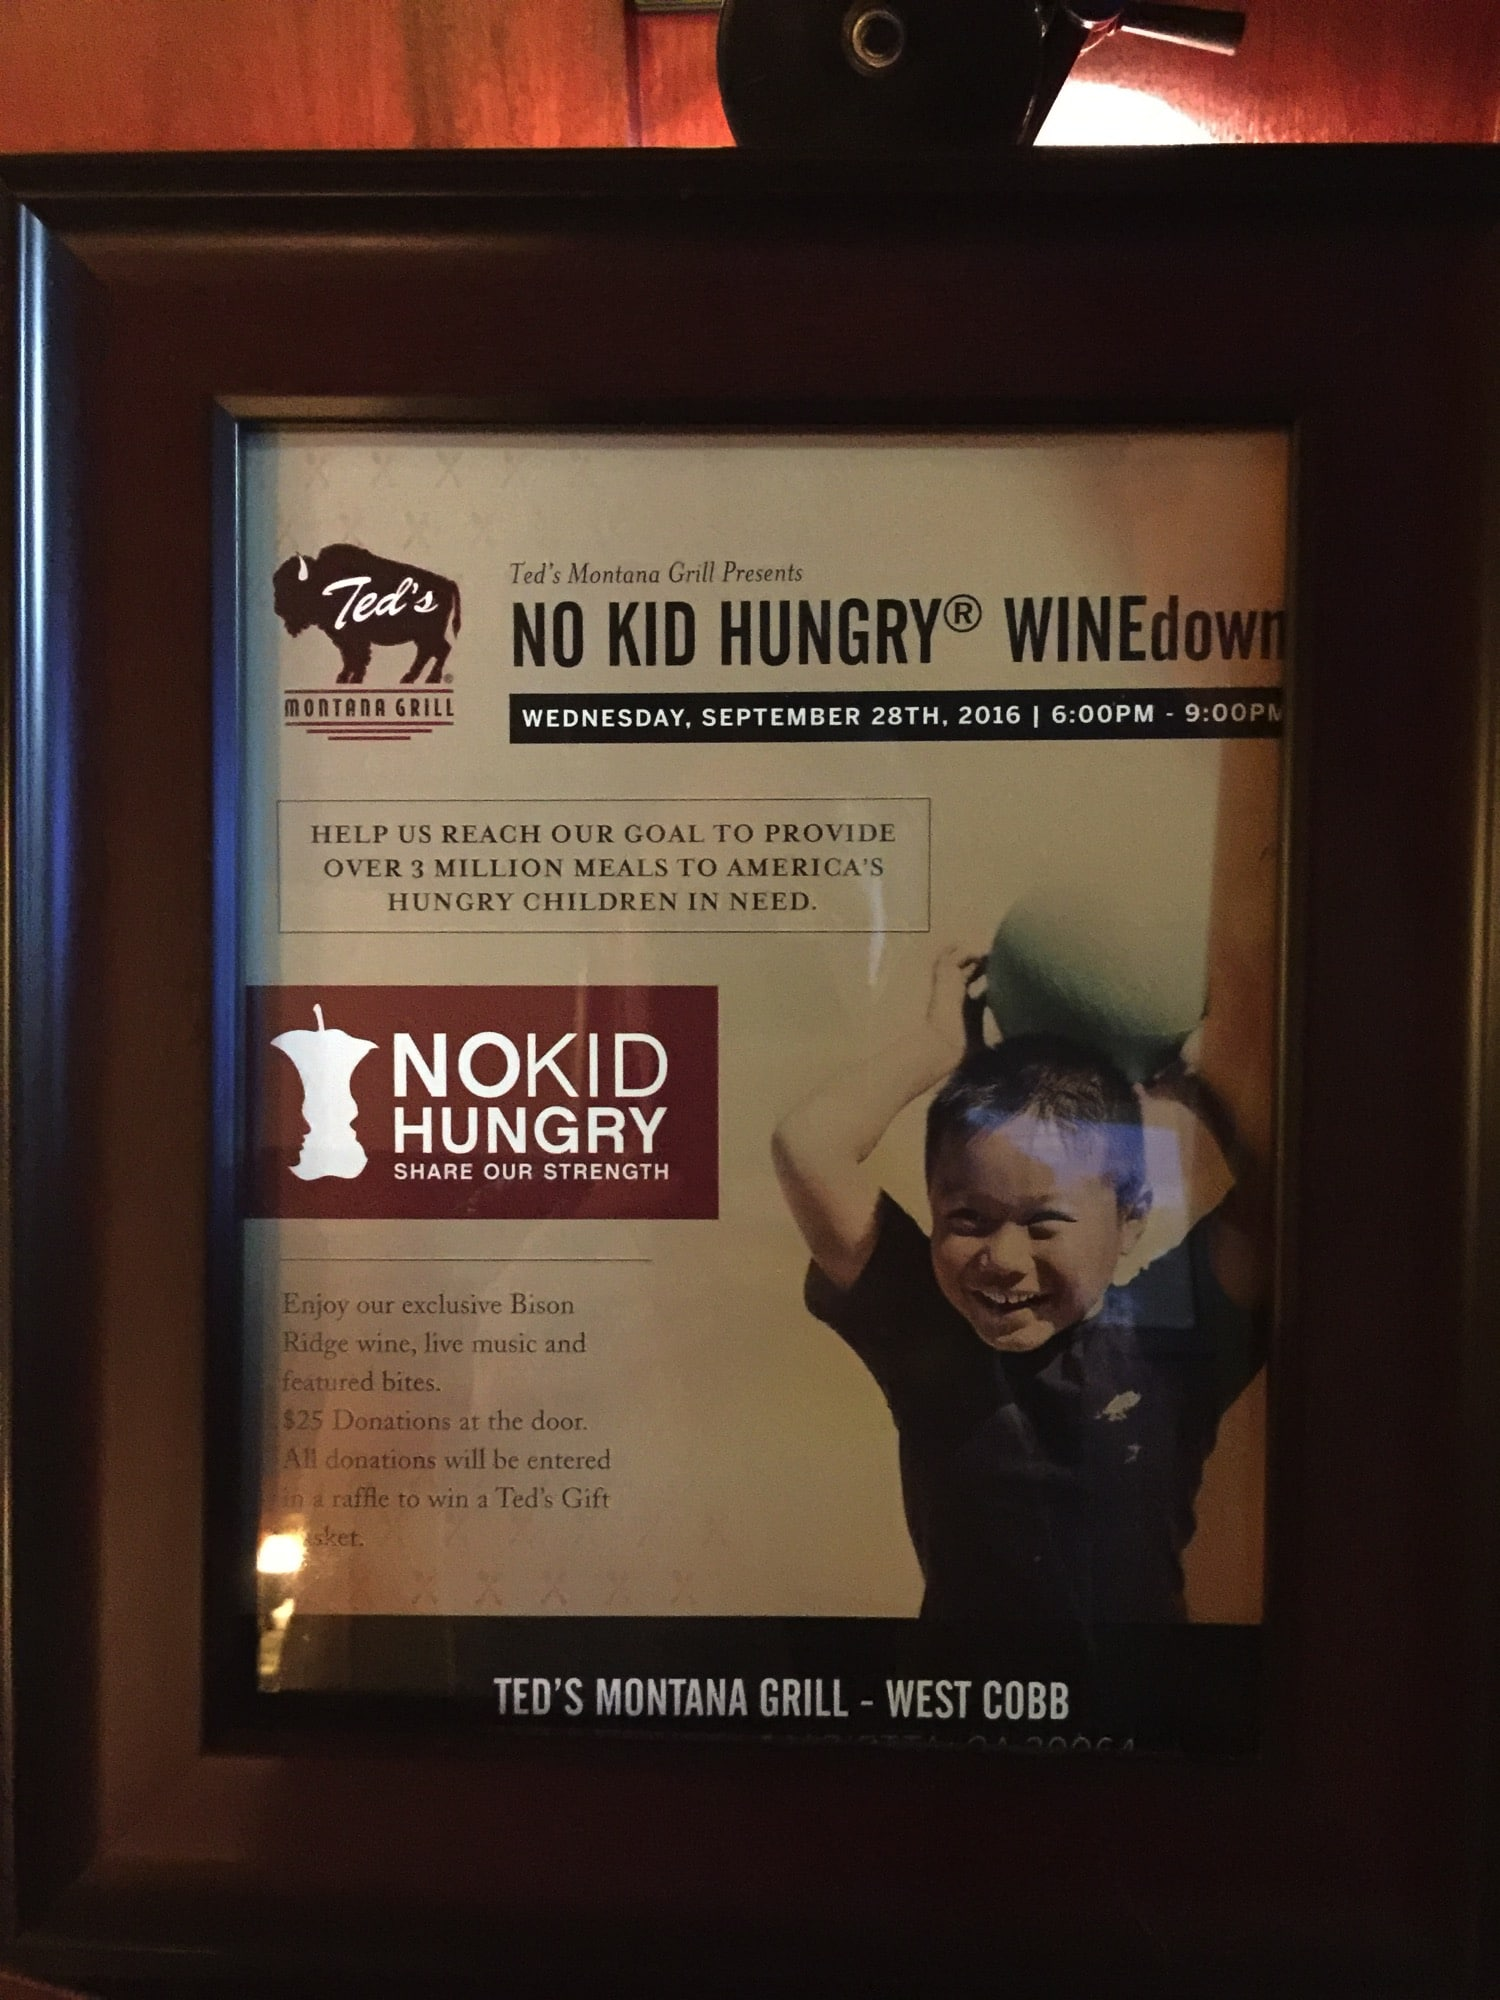 No Kid Hungry at Ted's